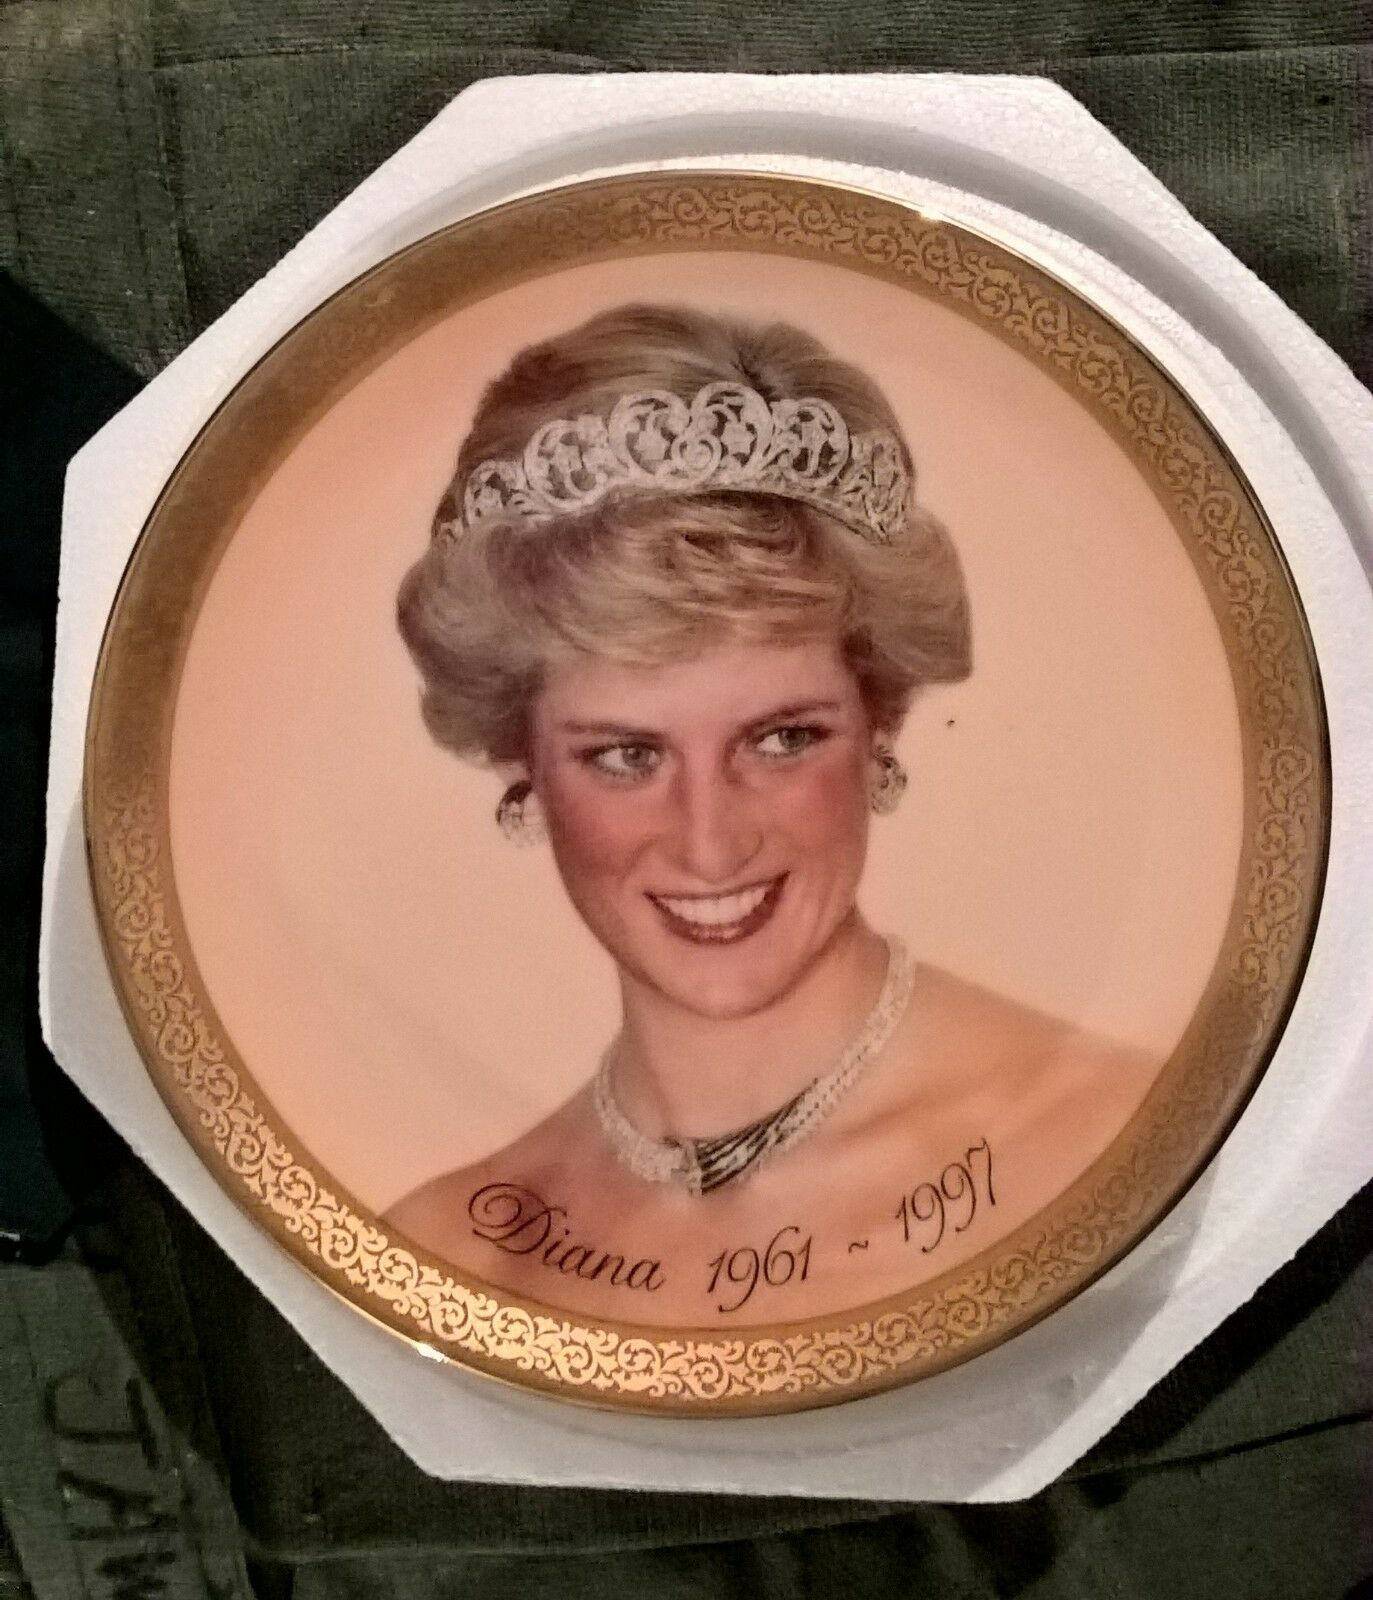 PRINCESS DIANA PLATE  PURCHASED AT THE TIME OF HER DEATH  1997 RIP X